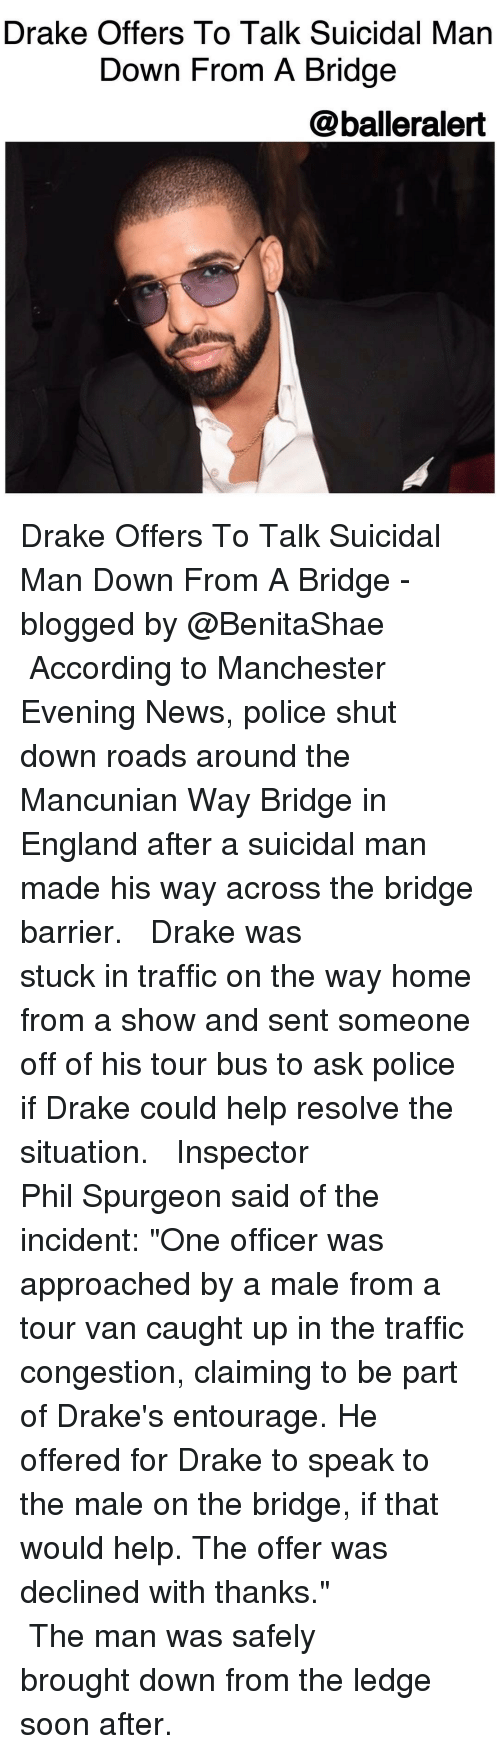 "Memes, Entourage, and Mancunian: Drake Offers To Talk Suicidal Man  Down From A Bridge  @balleralert Drake Offers To Talk Suicidal Man Down From A Bridge -blogged by @BenitaShae ⠀⠀⠀⠀⠀⠀⠀⠀⠀ ⠀⠀⠀⠀⠀⠀⠀⠀⠀ According to Manchester Evening News, police shut down roads around the Mancunian Way Bridge in England after a suicidal man made his way across the bridge barrier. ⠀⠀⠀⠀⠀⠀⠀⠀⠀ ⠀⠀⠀⠀⠀⠀⠀⠀⠀ Drake was stuck in traffic on the way home from a show and sent someone off of his tour bus to ask police if Drake could help resolve the situation. ⠀⠀⠀⠀⠀⠀⠀⠀⠀ ⠀⠀⠀⠀⠀⠀⠀⠀⠀ Inspector Phil Spurgeon said of the incident: ""One officer was approached by a male from a tour van caught up in the traffic congestion, claiming to be part of Drake's entourage. He offered for Drake to speak to the male on the bridge, if that would help. The offer was declined with thanks."" ⠀⠀⠀⠀⠀⠀⠀⠀⠀ ⠀⠀⠀⠀⠀⠀⠀⠀⠀ The man was safely brought down from the ledge soon after."